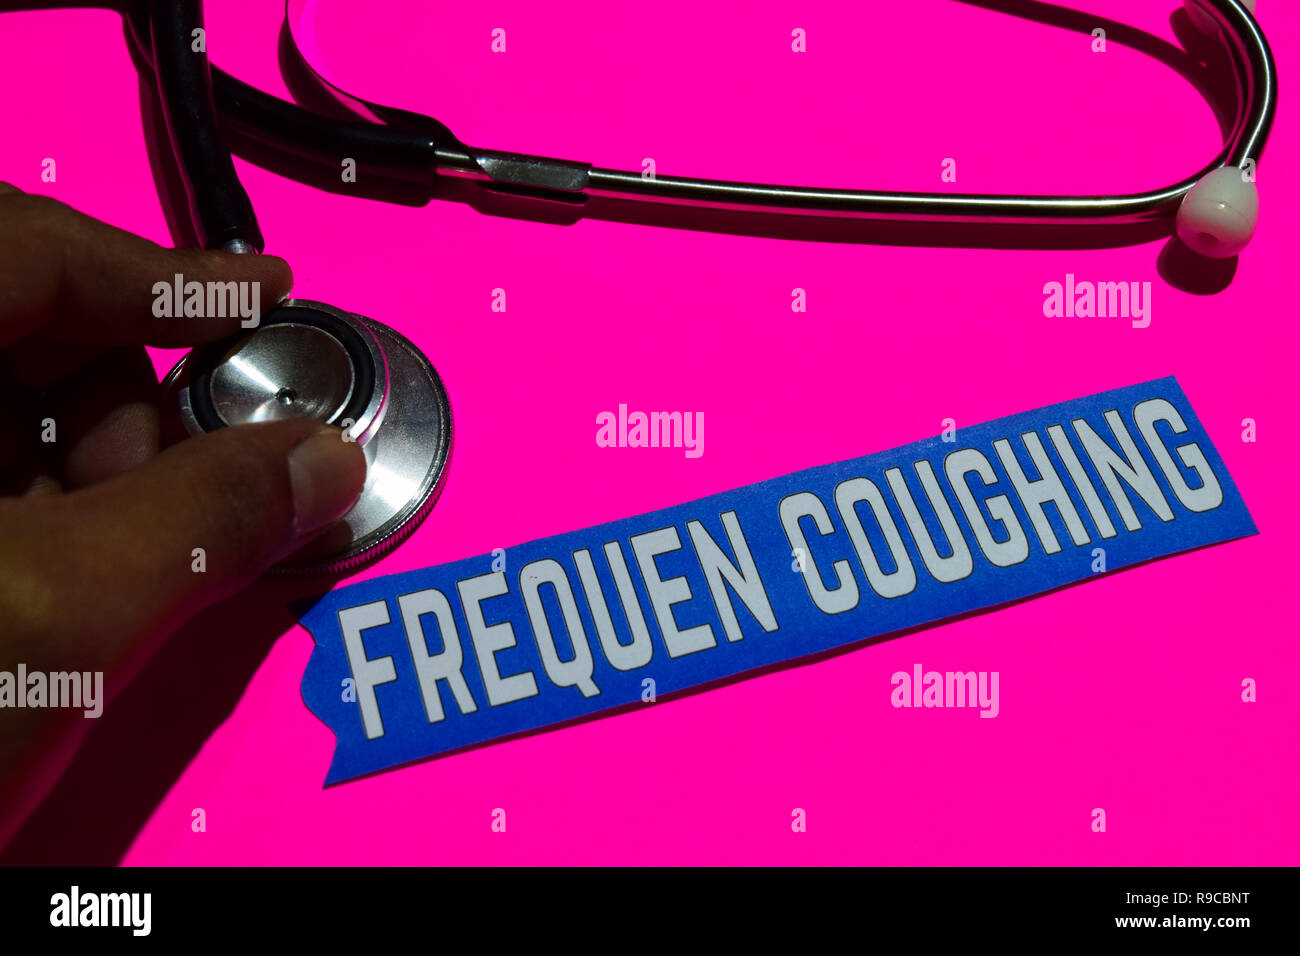 Frequen coughing on the paper with healthcare concept. With stethoscope on pink bakcground - Stock Image